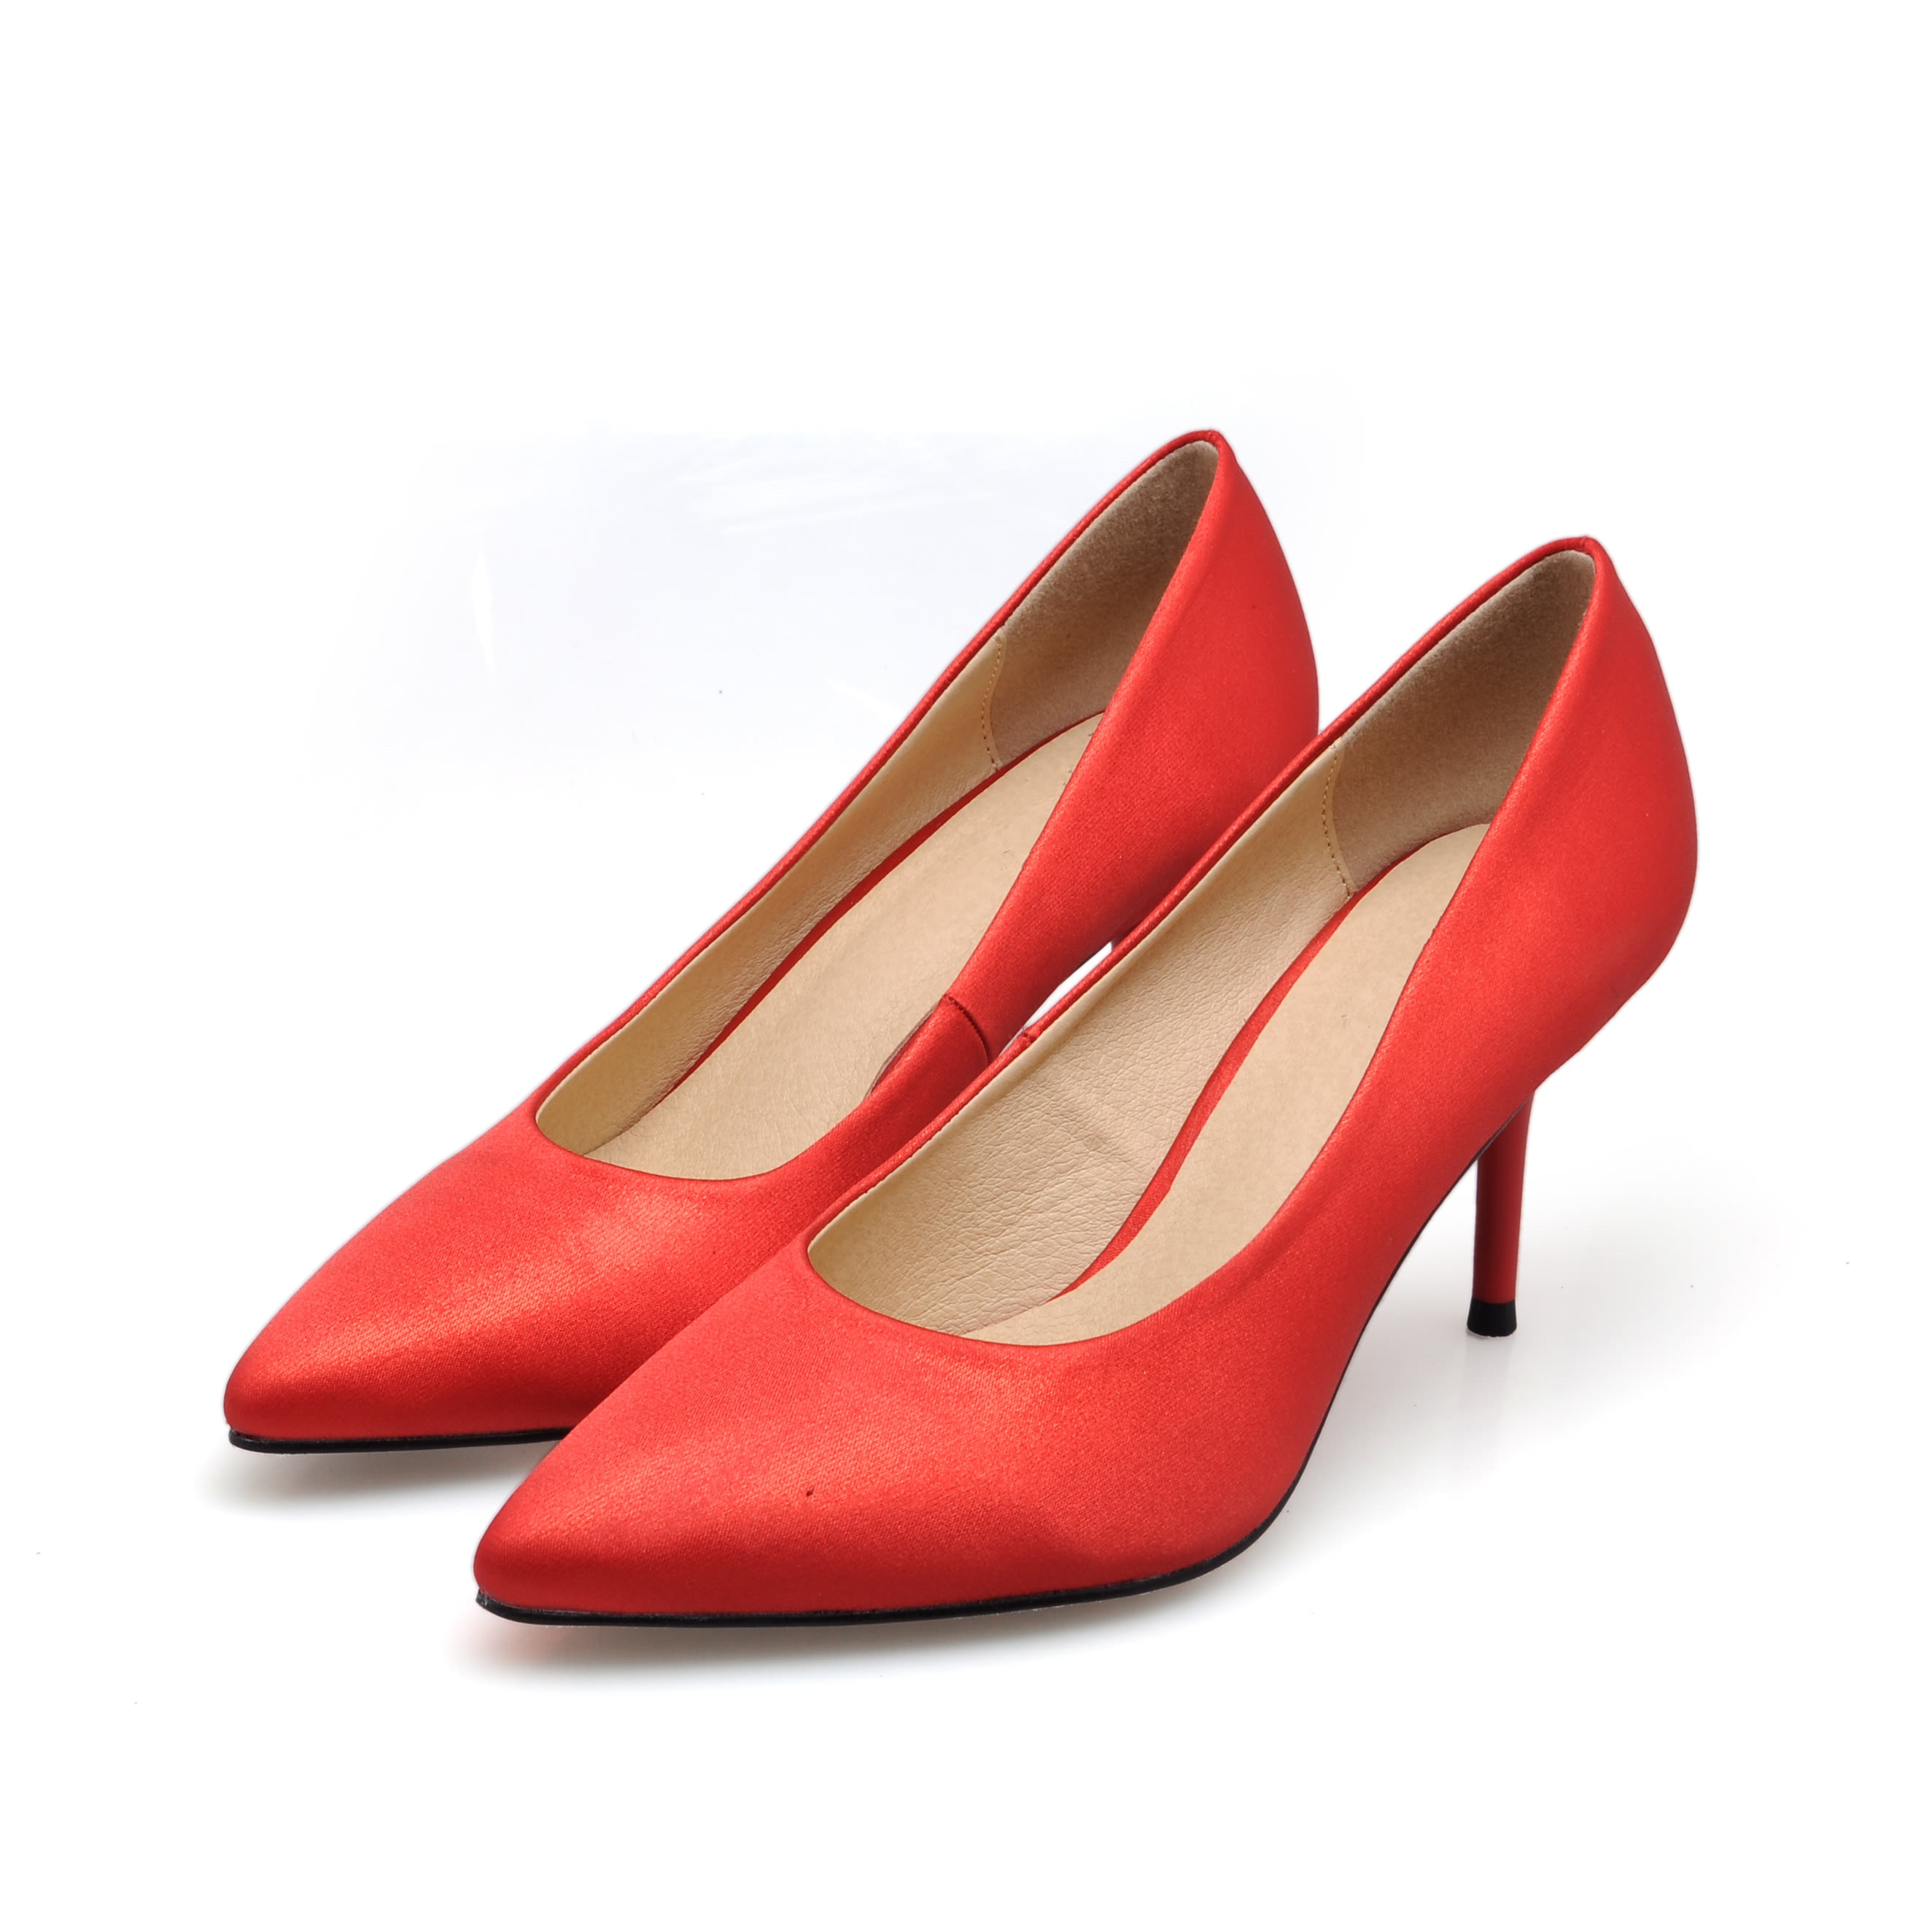 Black Womens Shoes New Fashion Genuine Leather Pumps Shoe Plus Size 34-41 Ladies Office Casual Pointed Toe High Heels SMYBK-75 new 2017 spring summer women shoes pointed toe high quality brand fashion womens flats ladies plus size 41 sweet flock t179